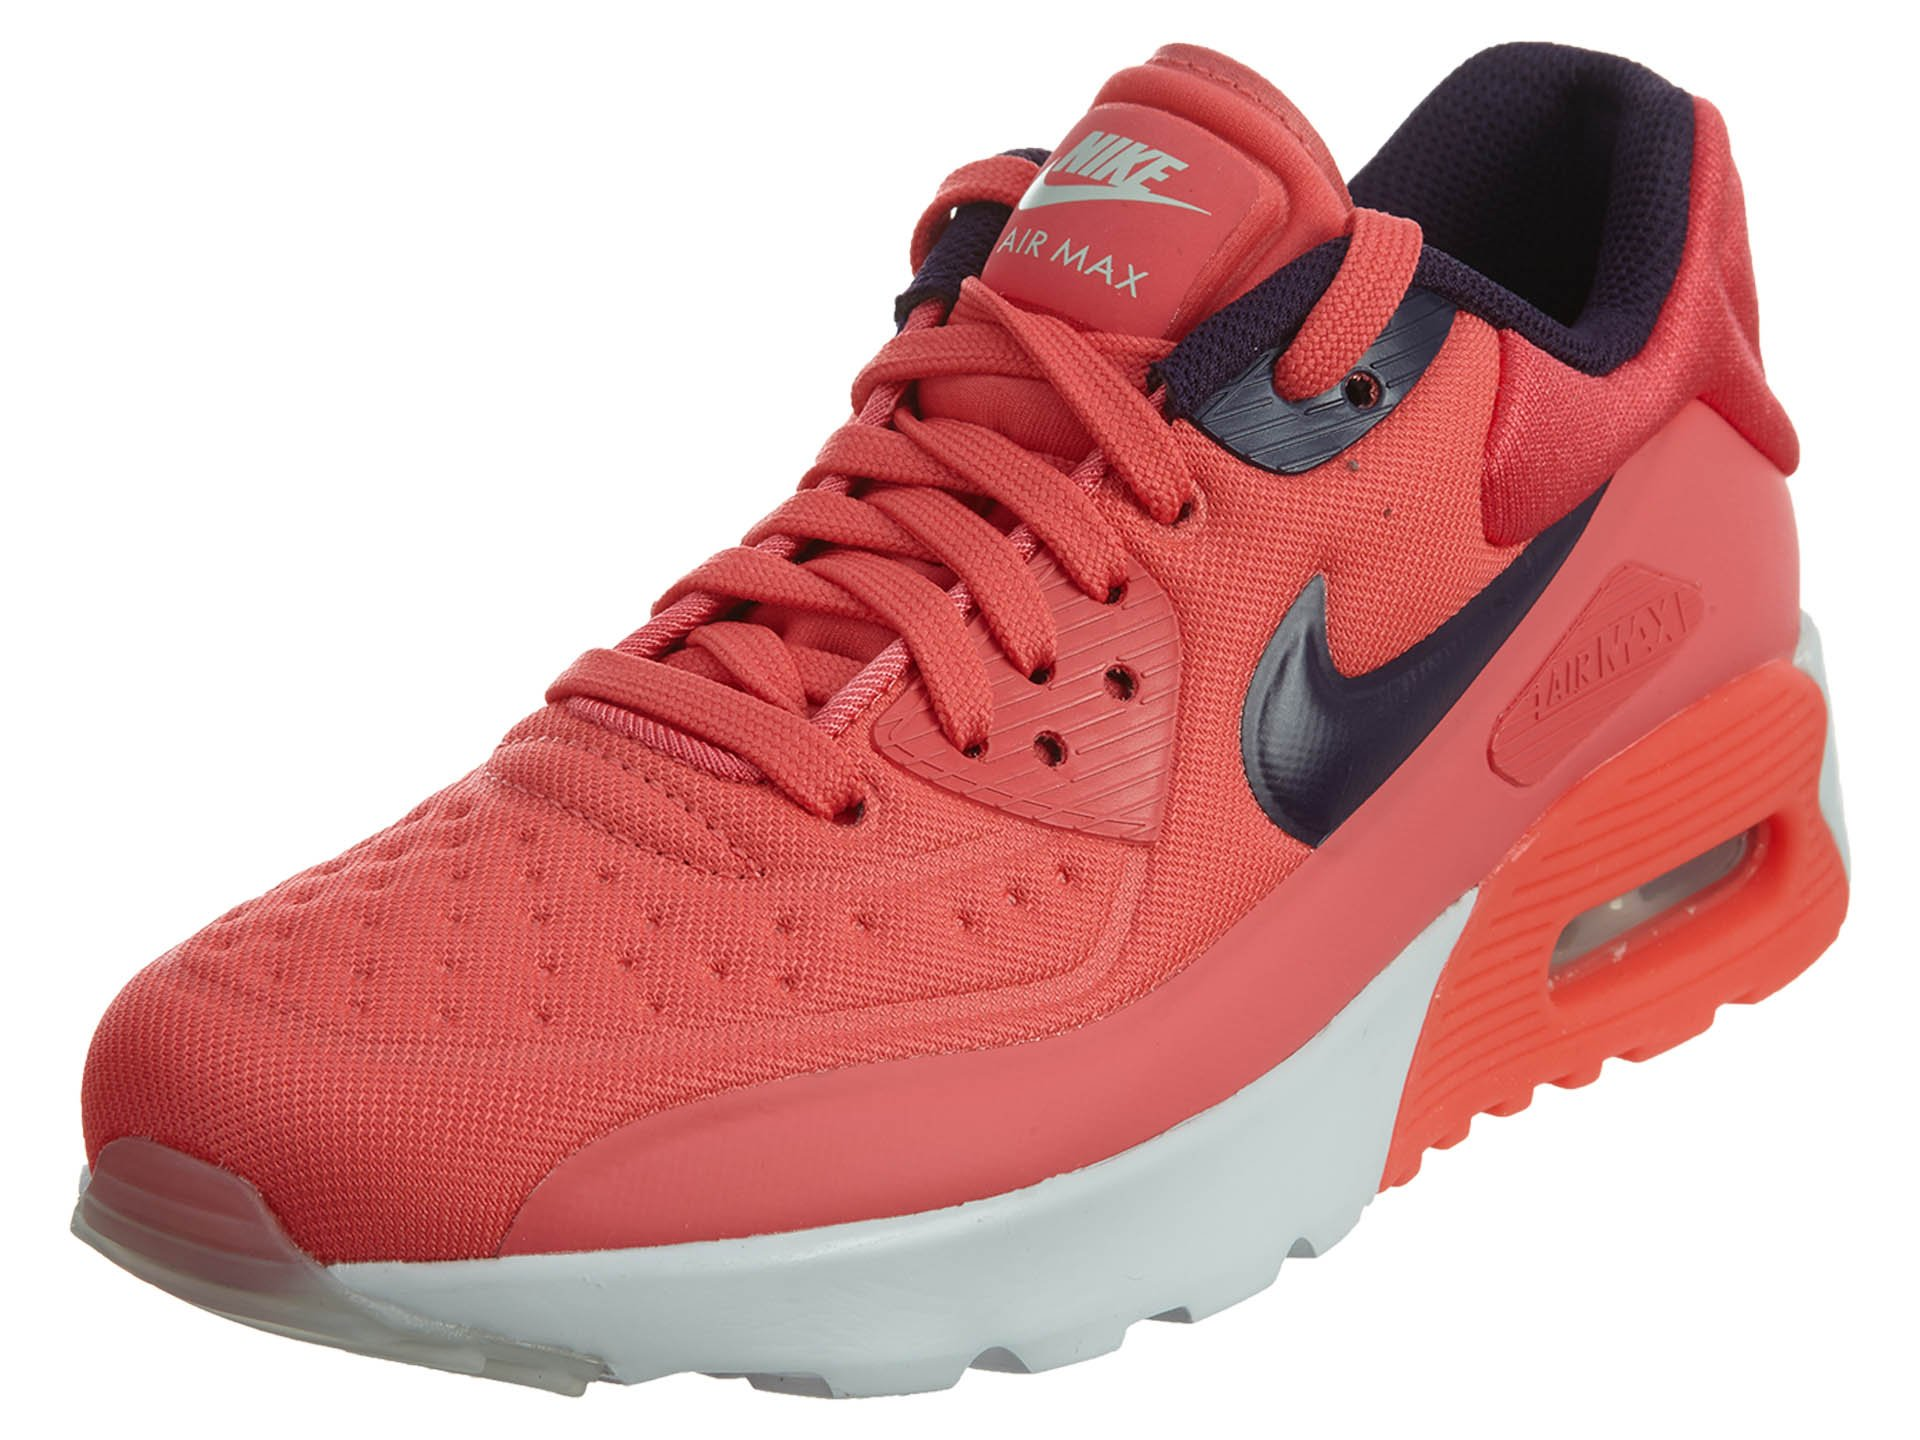 outlet store d9f71 64322 Galleon - Nike AIR MAX 90 ULTRA SE (GS) Girls Fashion-sneakers 844600-800 7Y  - Ember Glow Purple Dynasty-pure Platinum